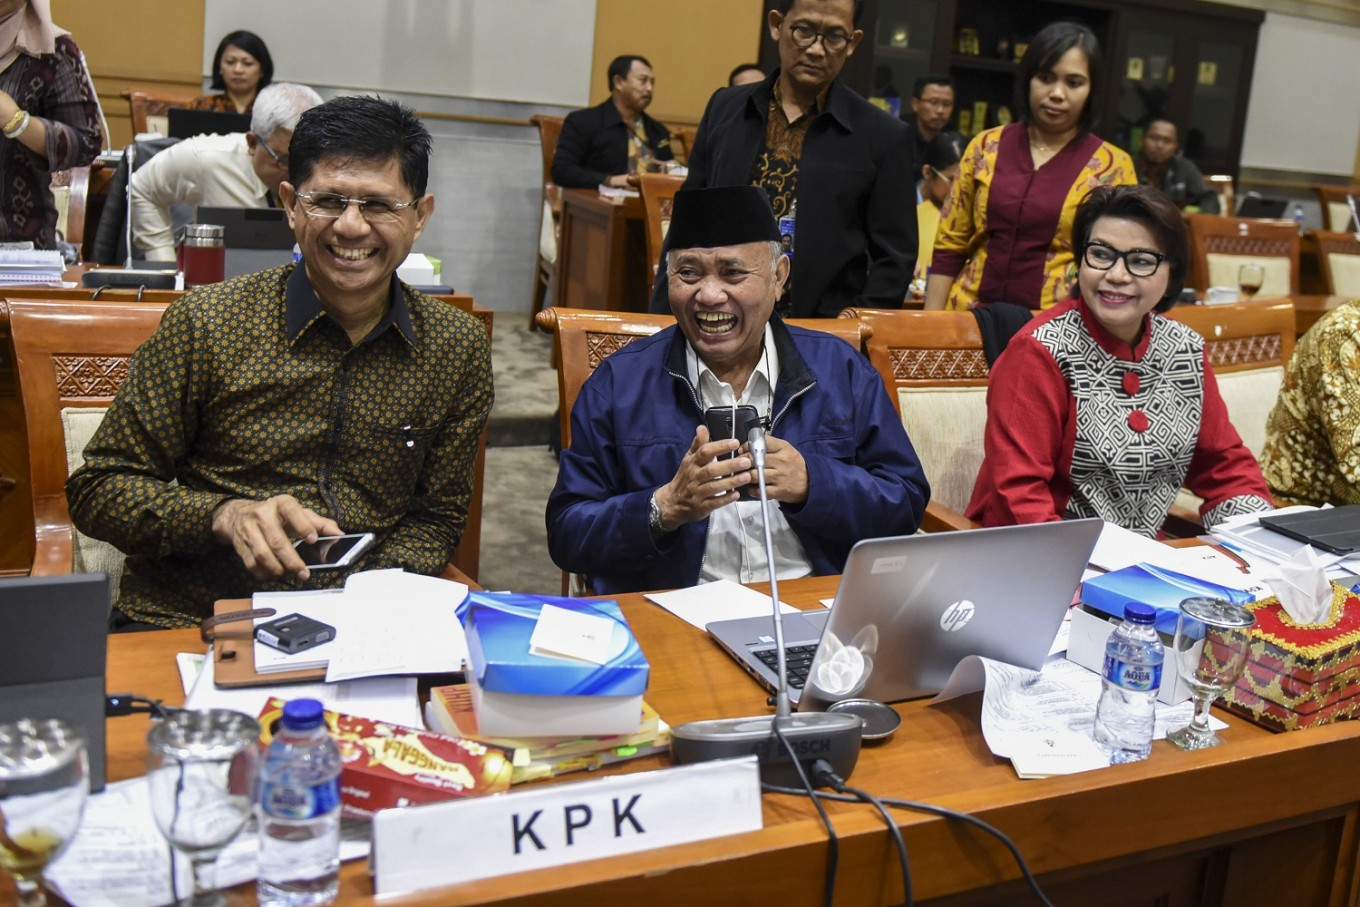 KPK rejects House invitation to attend hearing